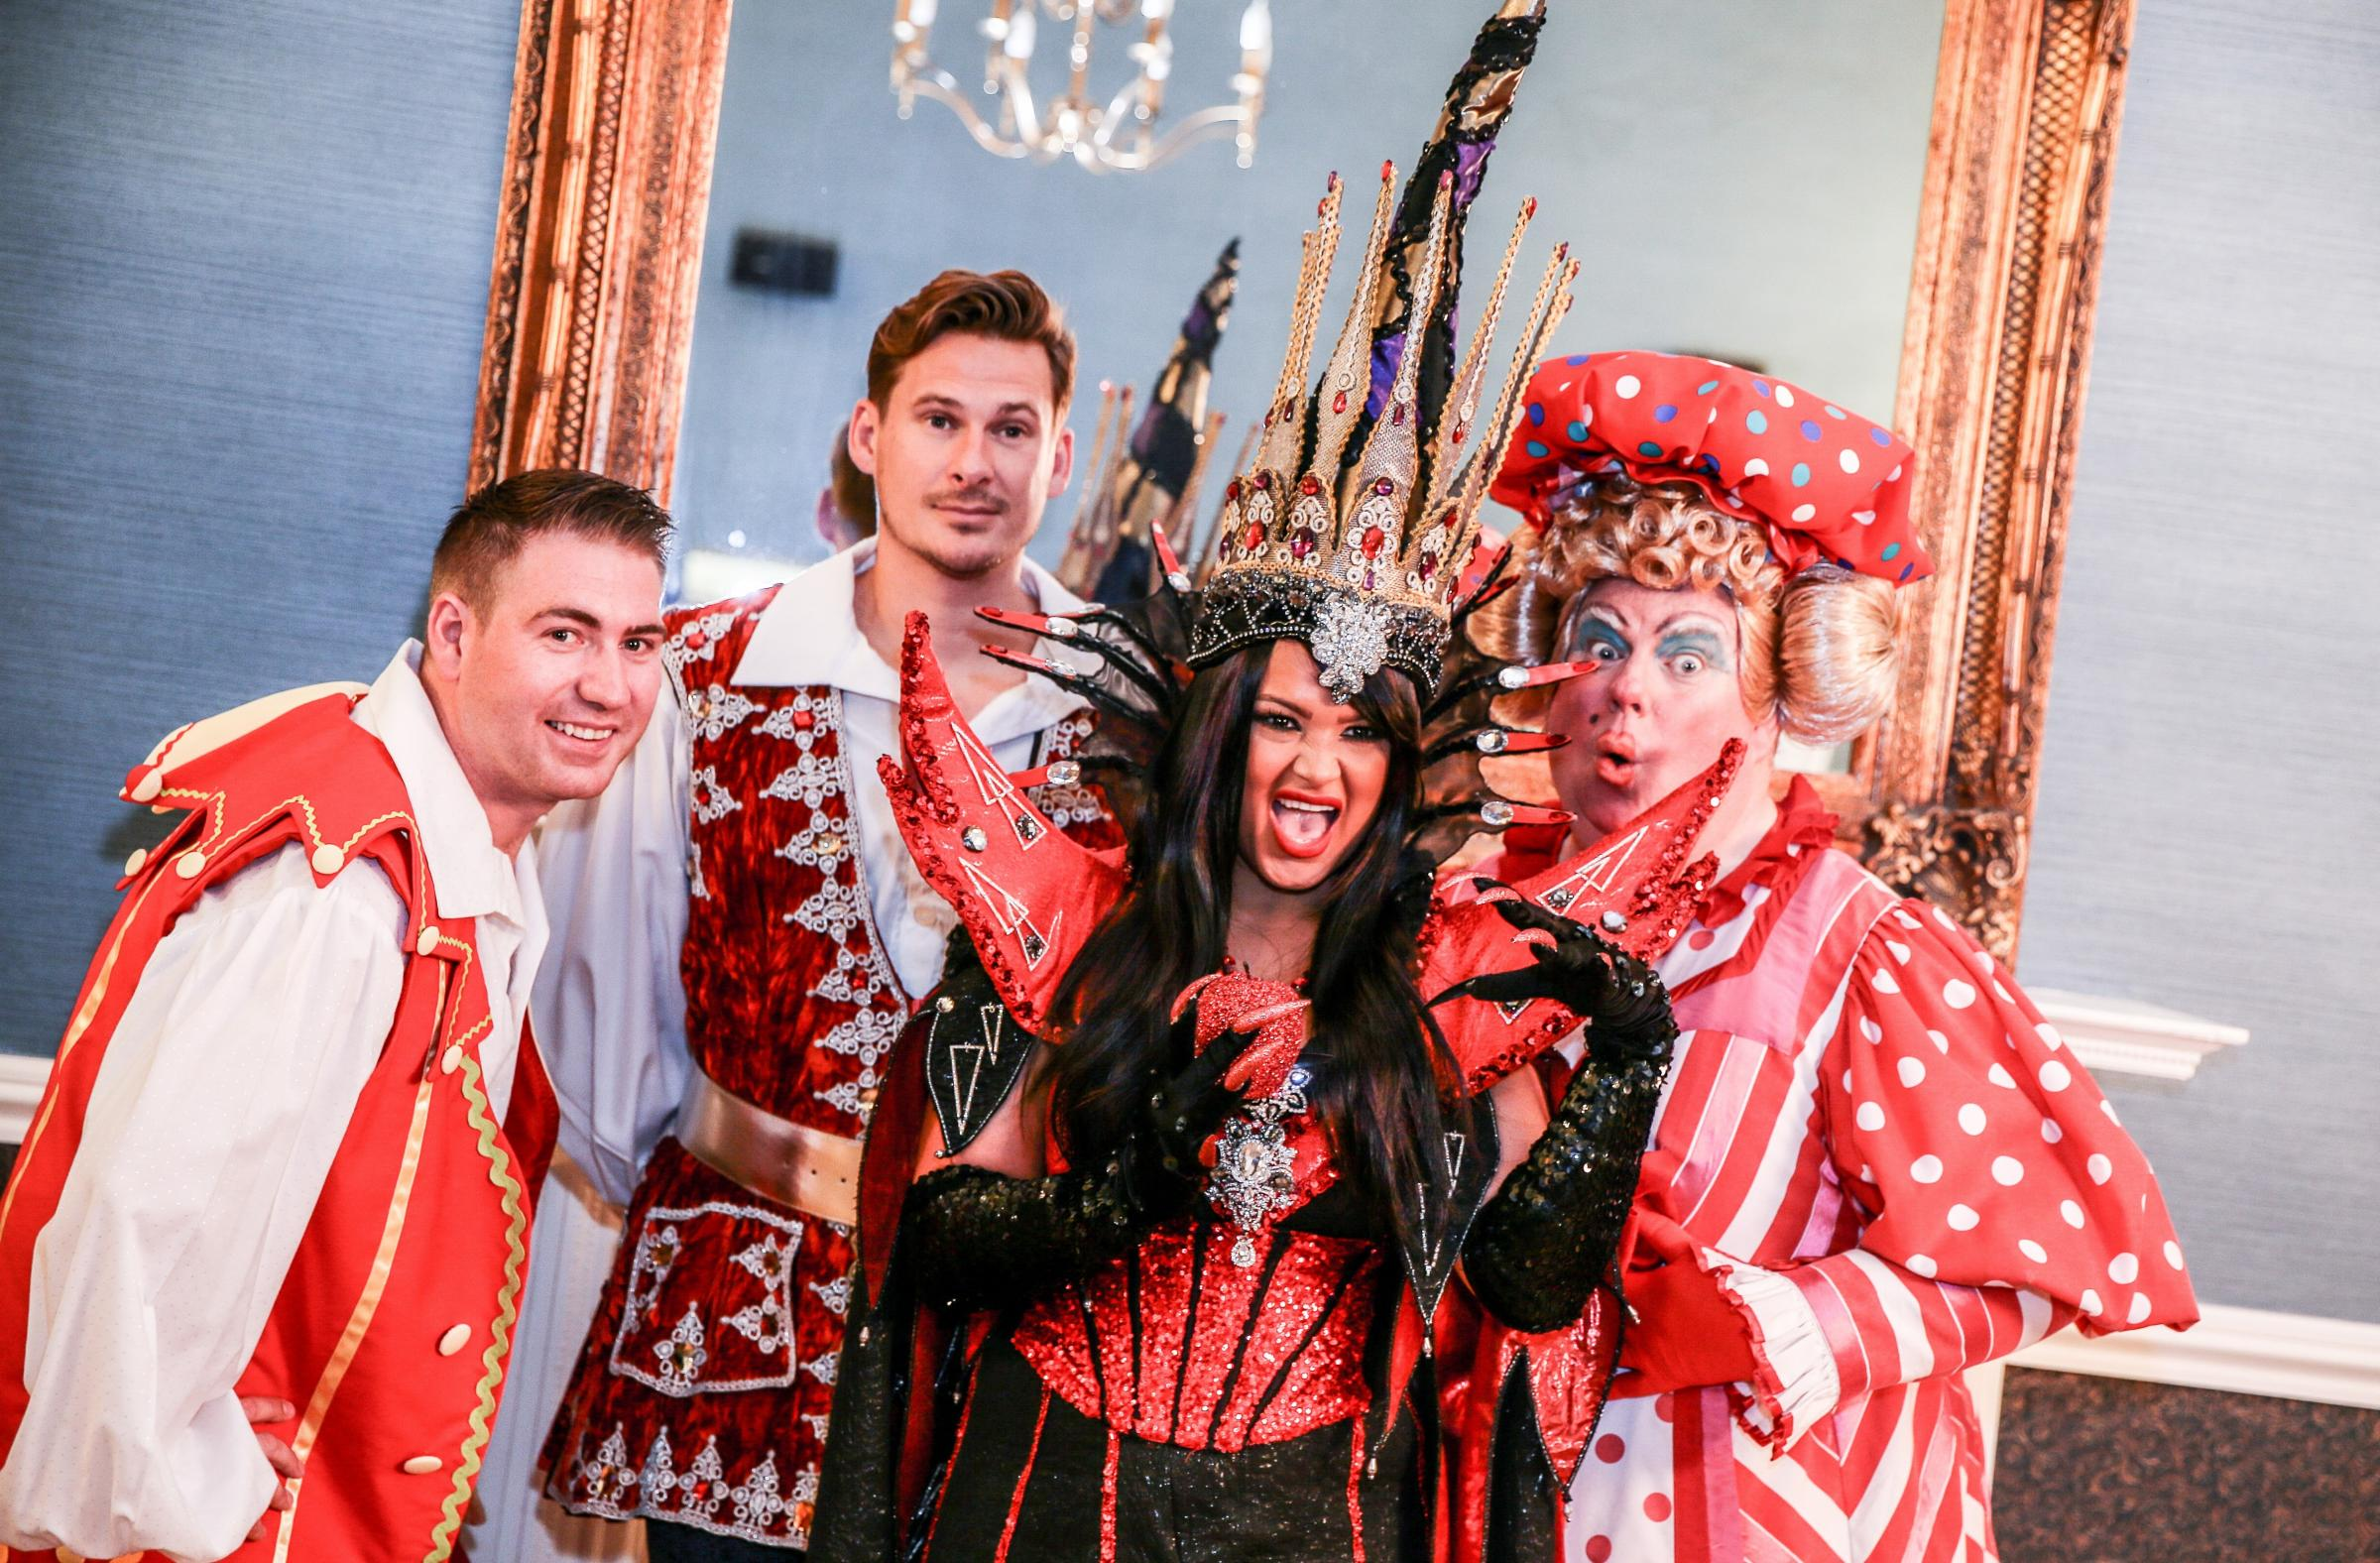 PANTO: Snow White opens at the Hippodrome on December 9.